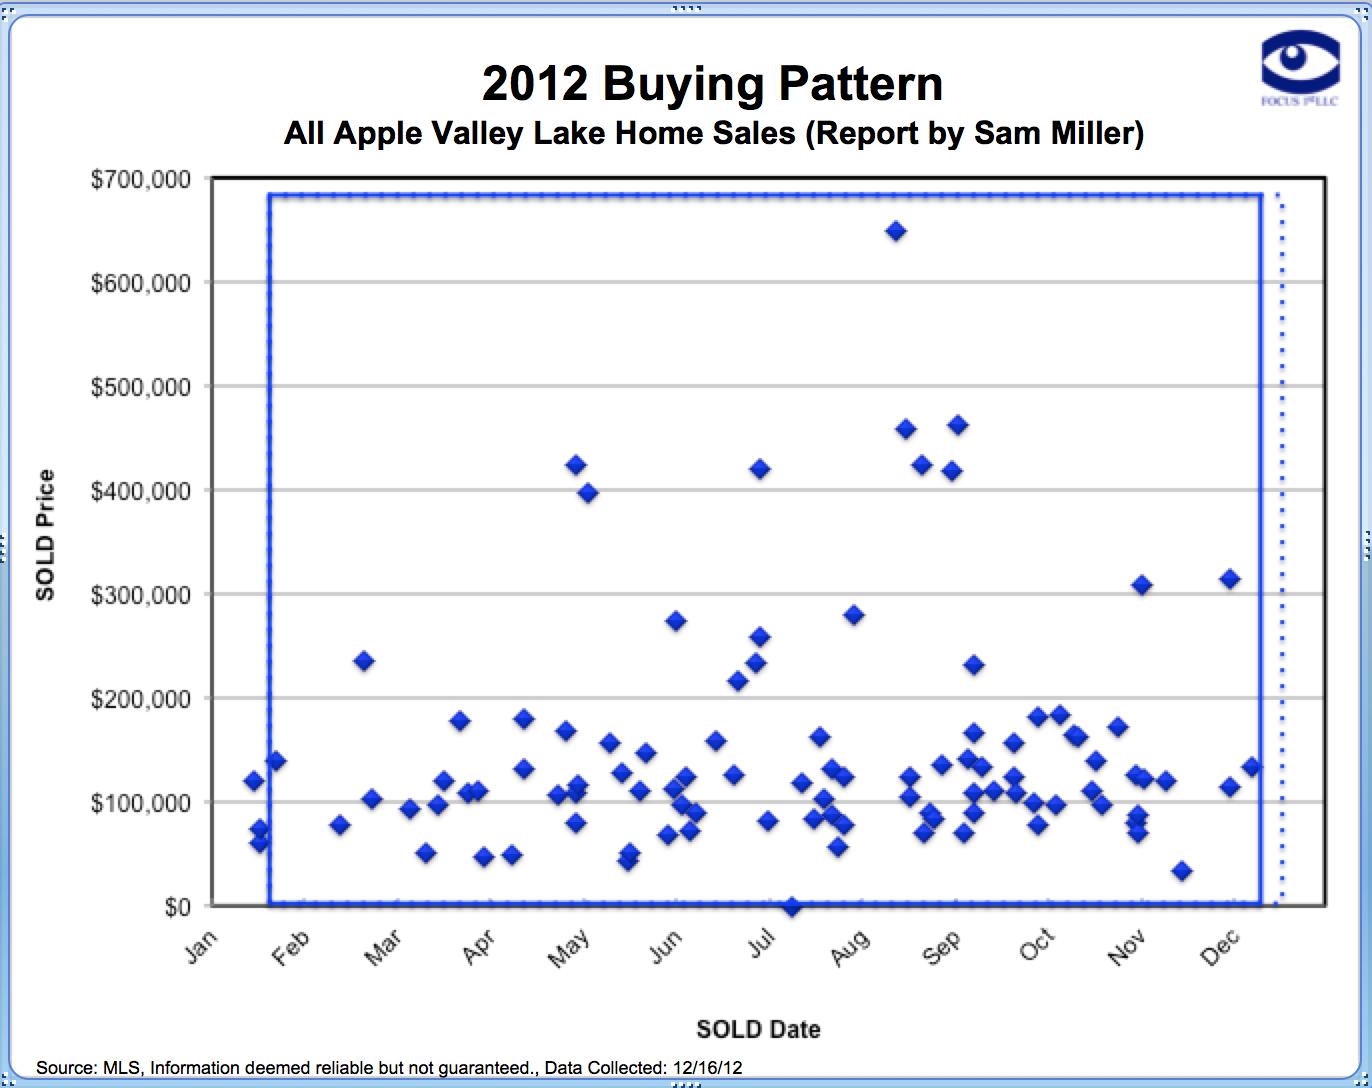 Apple Valley Lake 2012 Home Buying Trends Report by Apple Valley Lake REALTOR Sam Miller